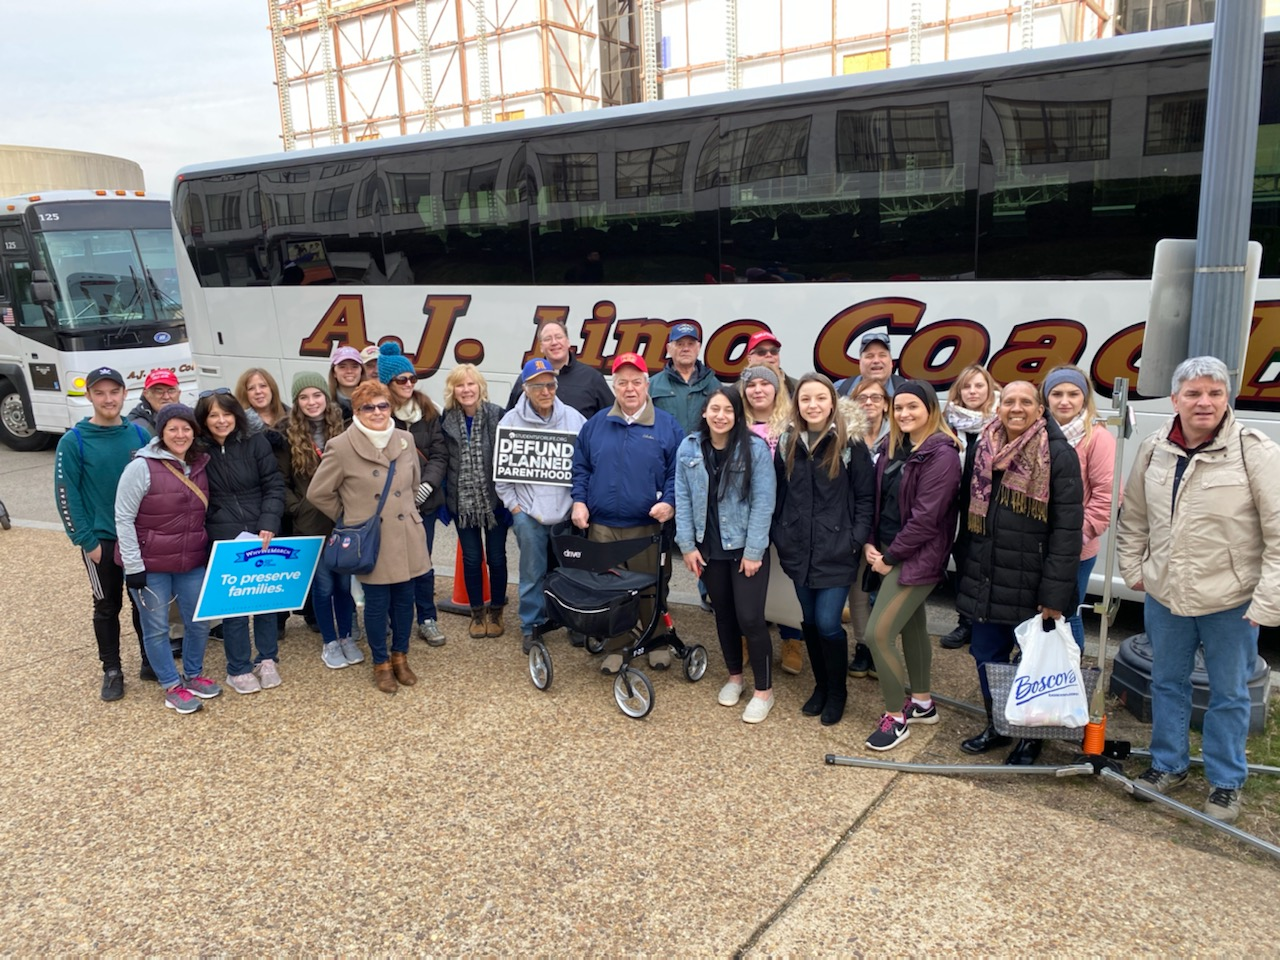 Local Group at March for Life 2020